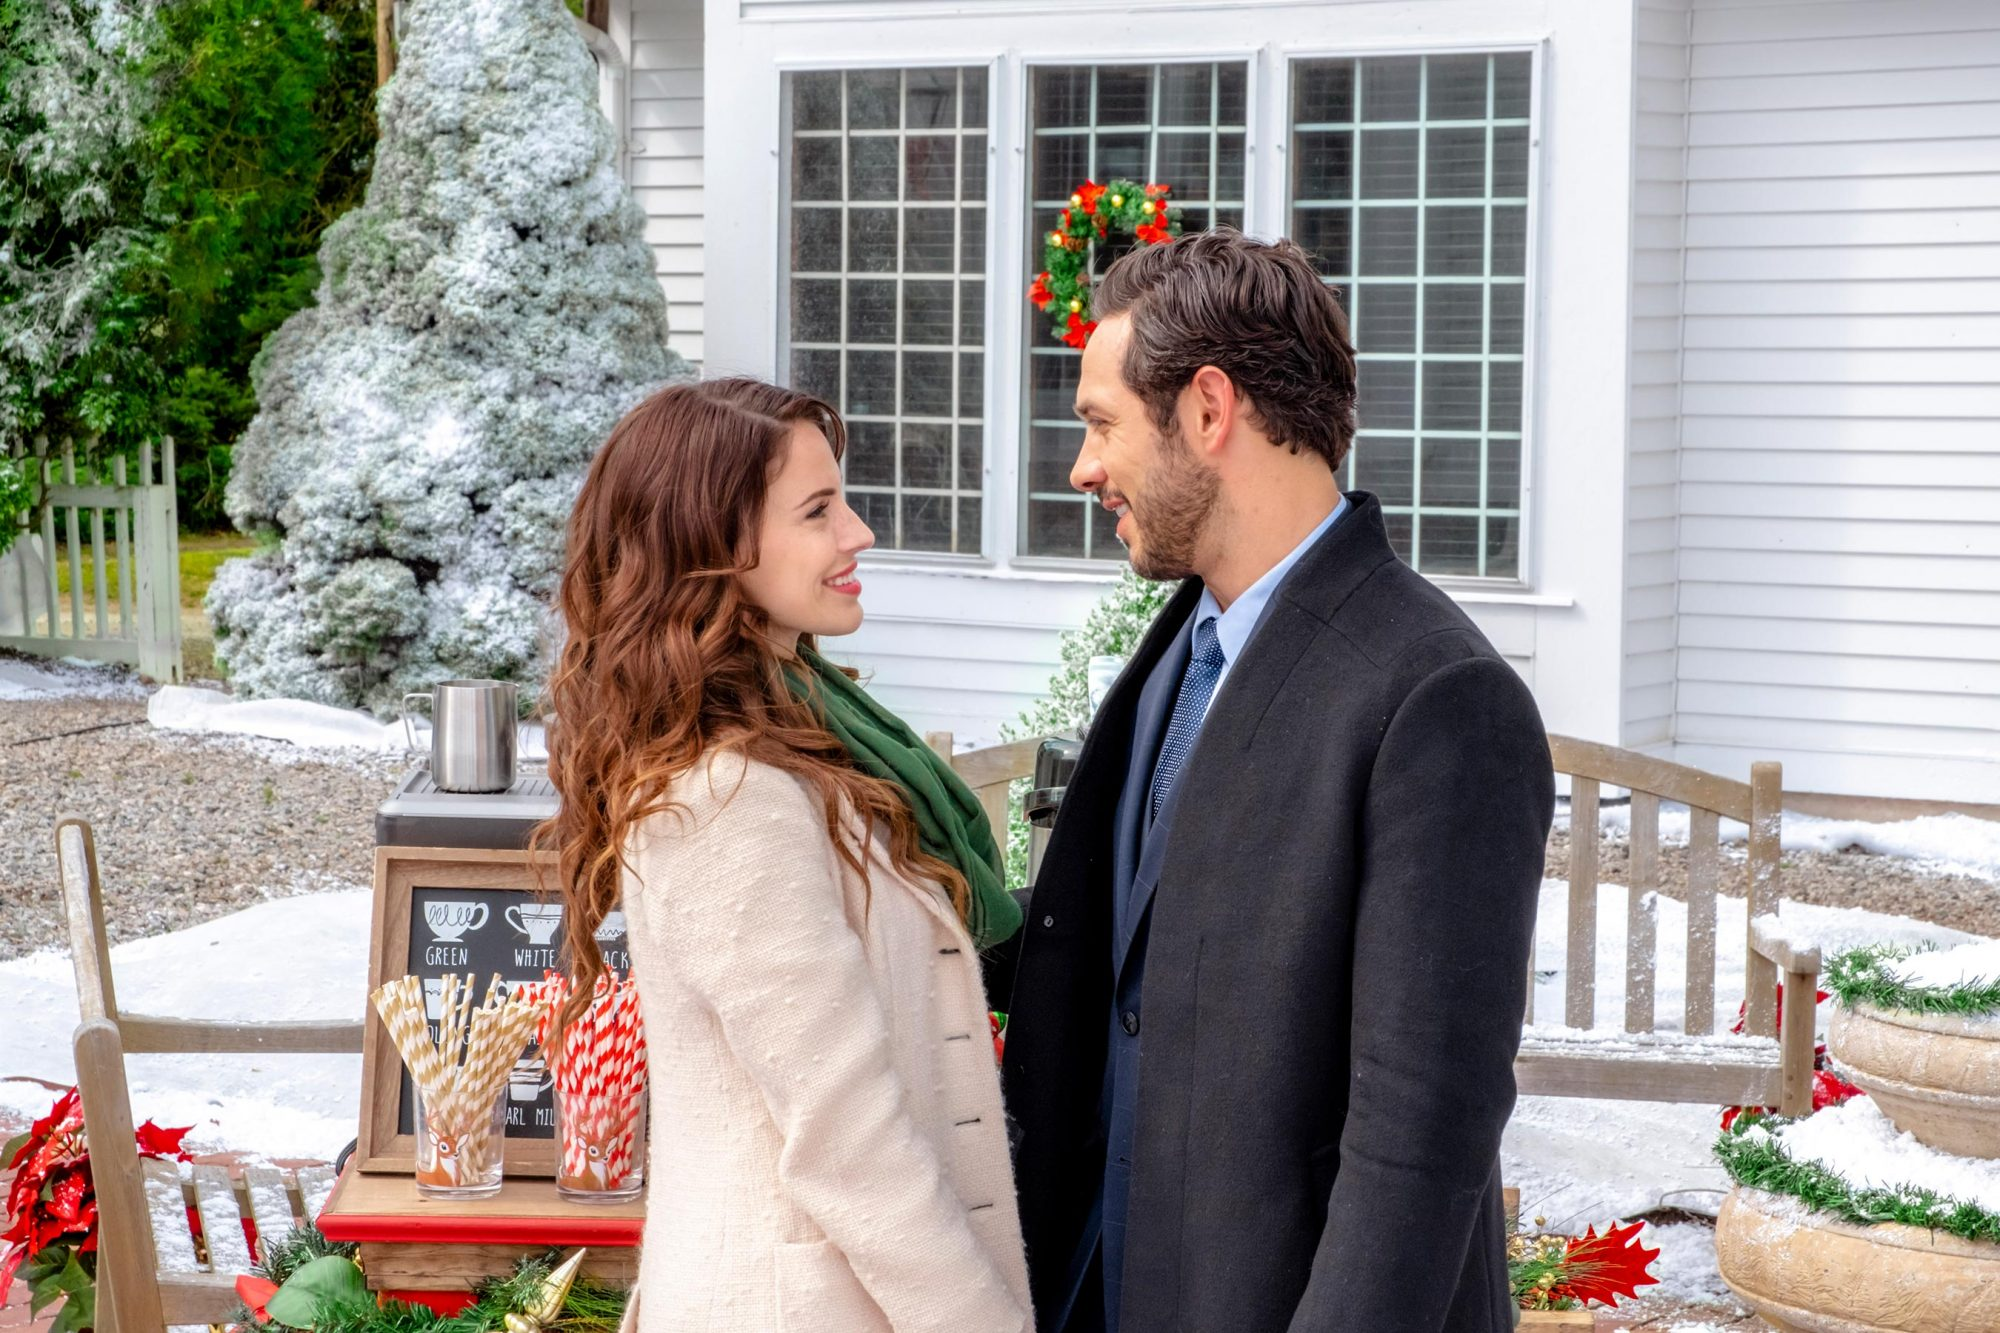 Christmas at Pemberley Manor  (Nov. 22, 6 p.m. ET/PT, Hallmark Channel)